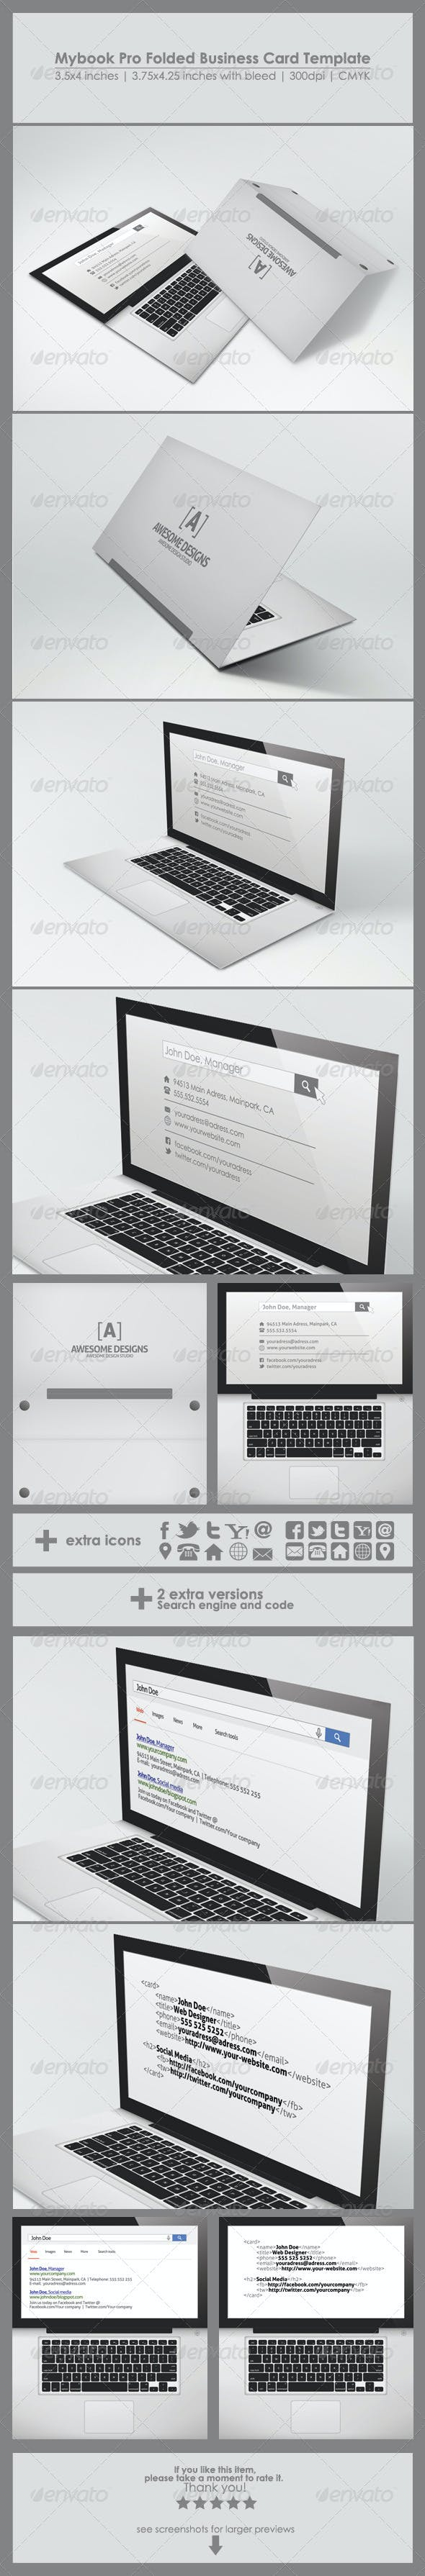 mybook pro folded business card template by zeppelin graphics